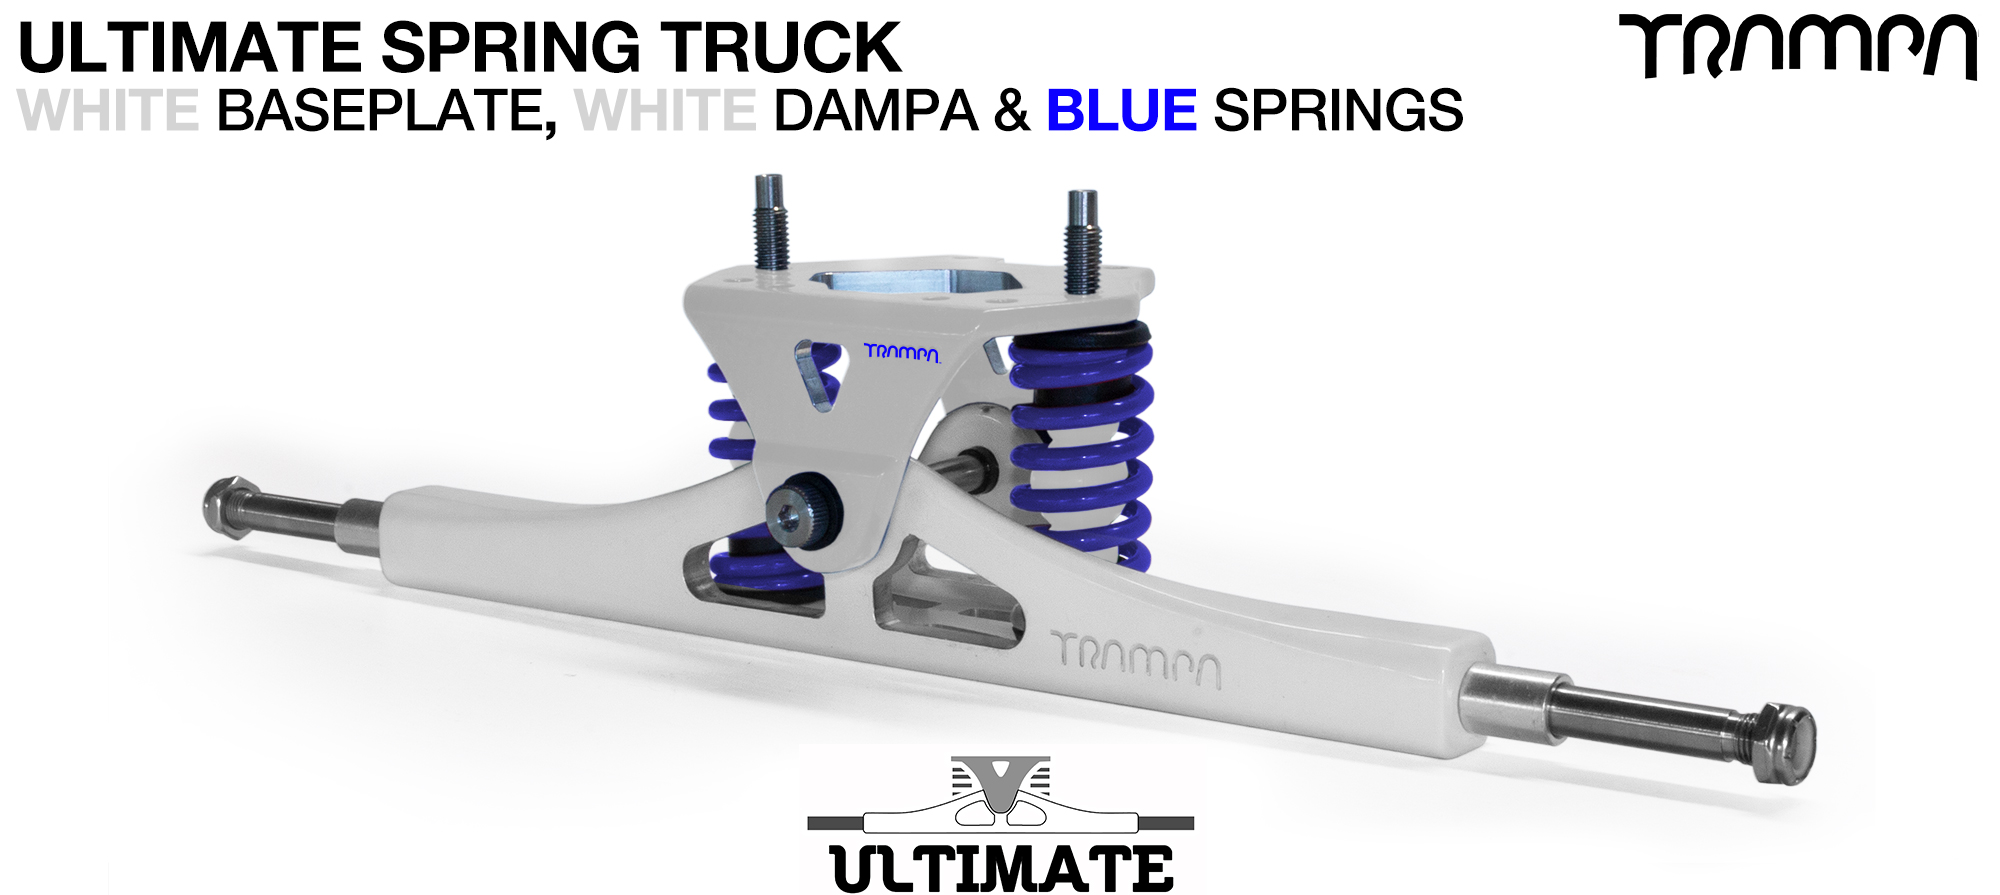 ULTIMATE ATB TRUCK - WHITE ATB Hanger with TITANIUM Axles & Kingpin & WHITE with BLUE logo Baseplate